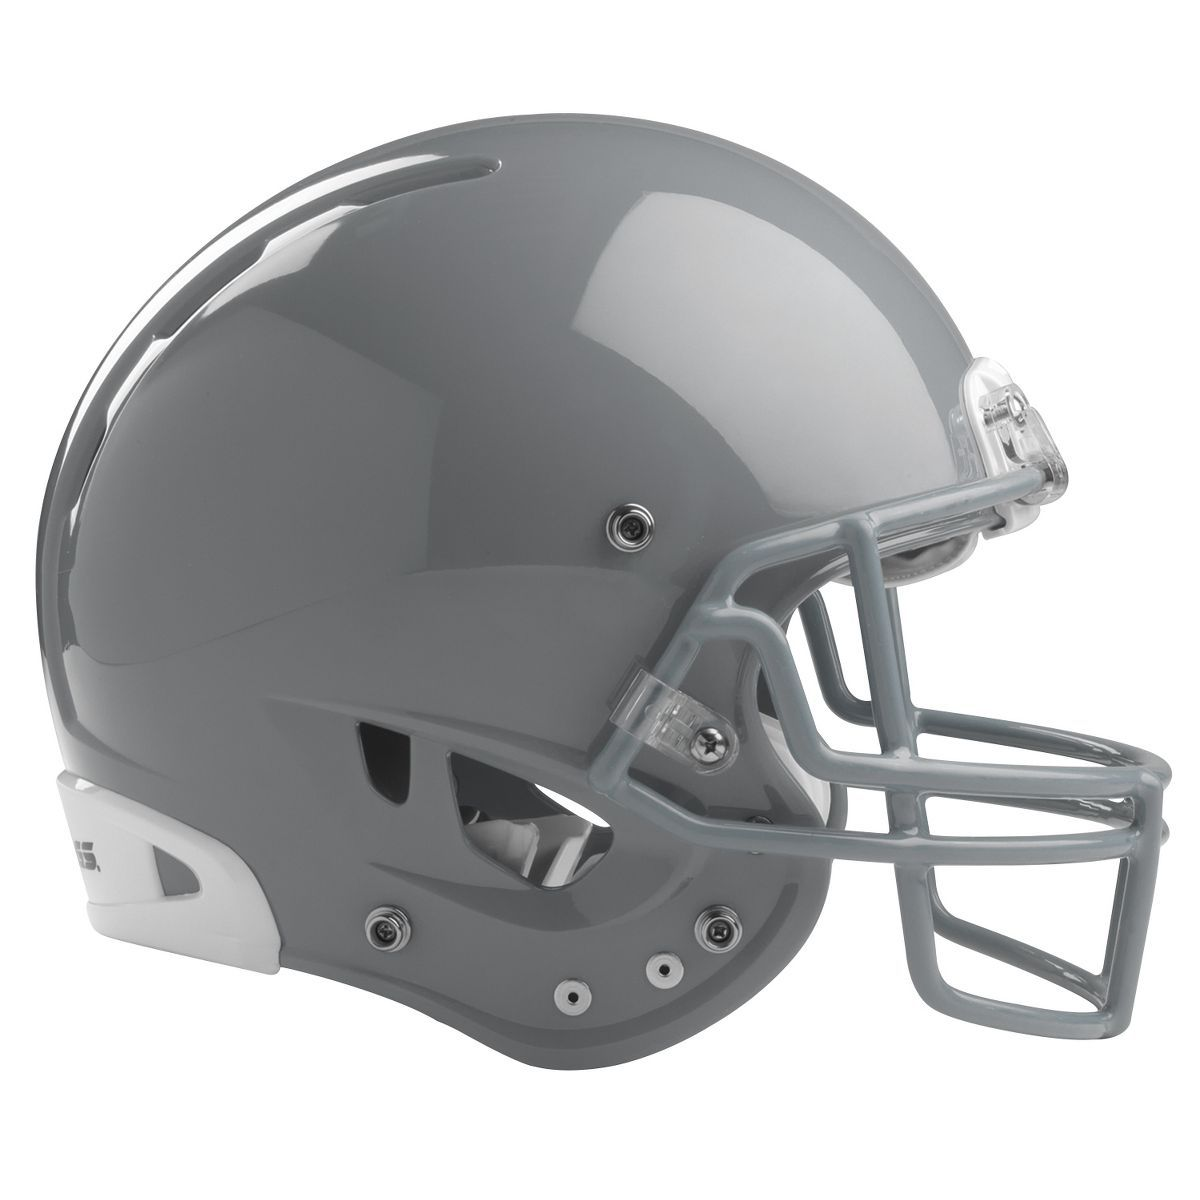 d415afed1191 Rawlings IMPULSE American Football Helmets - American Football ...